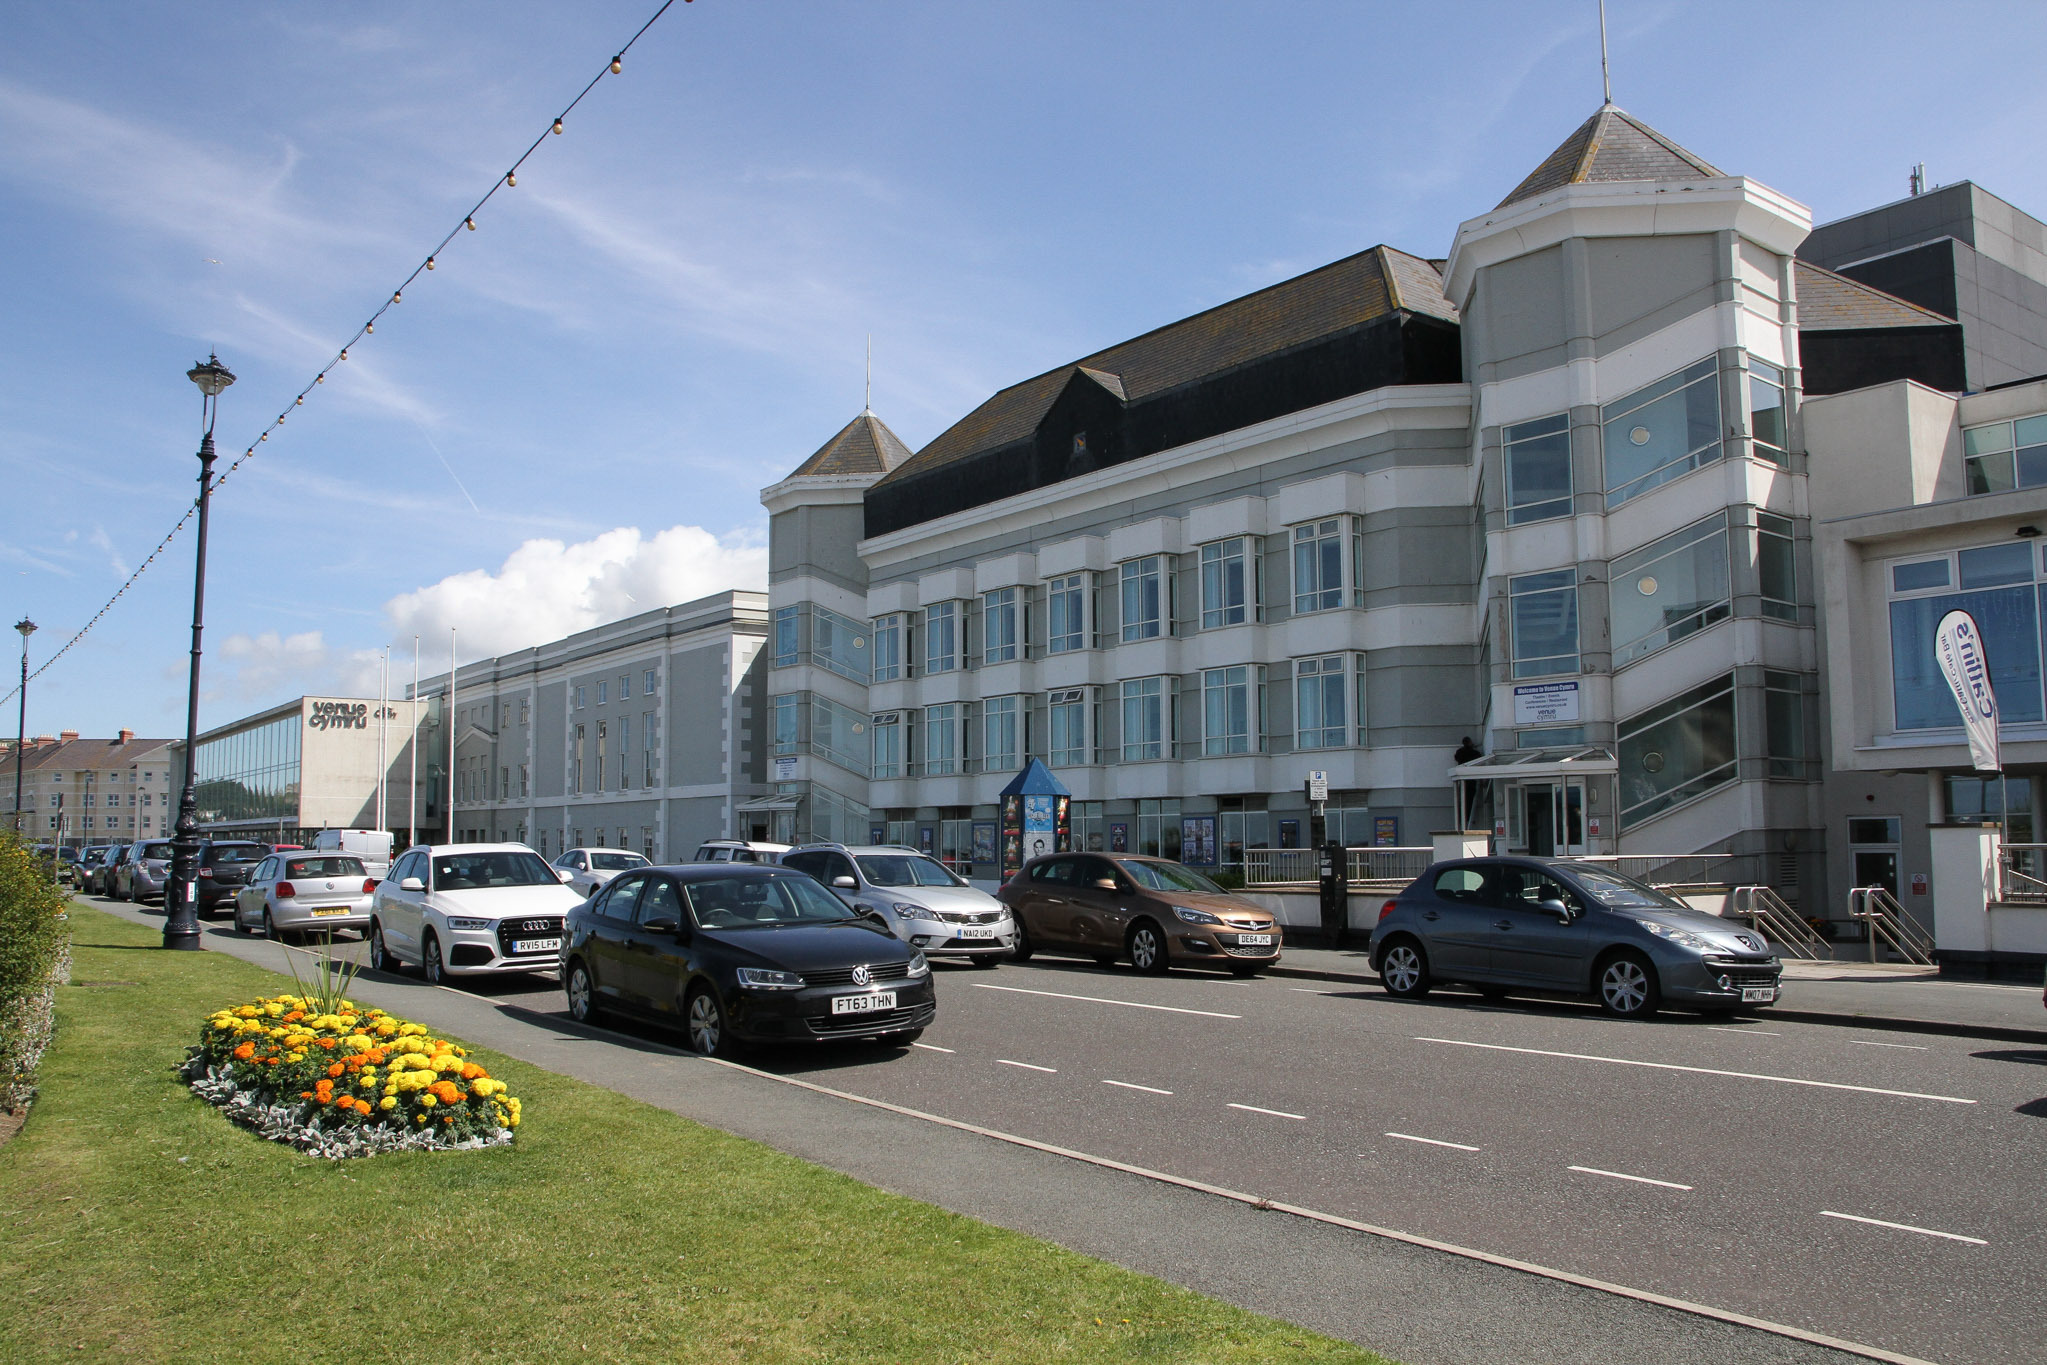 KR140716aLocation guide images of LlandunoVenue CymruTheatre and Conferance Centre